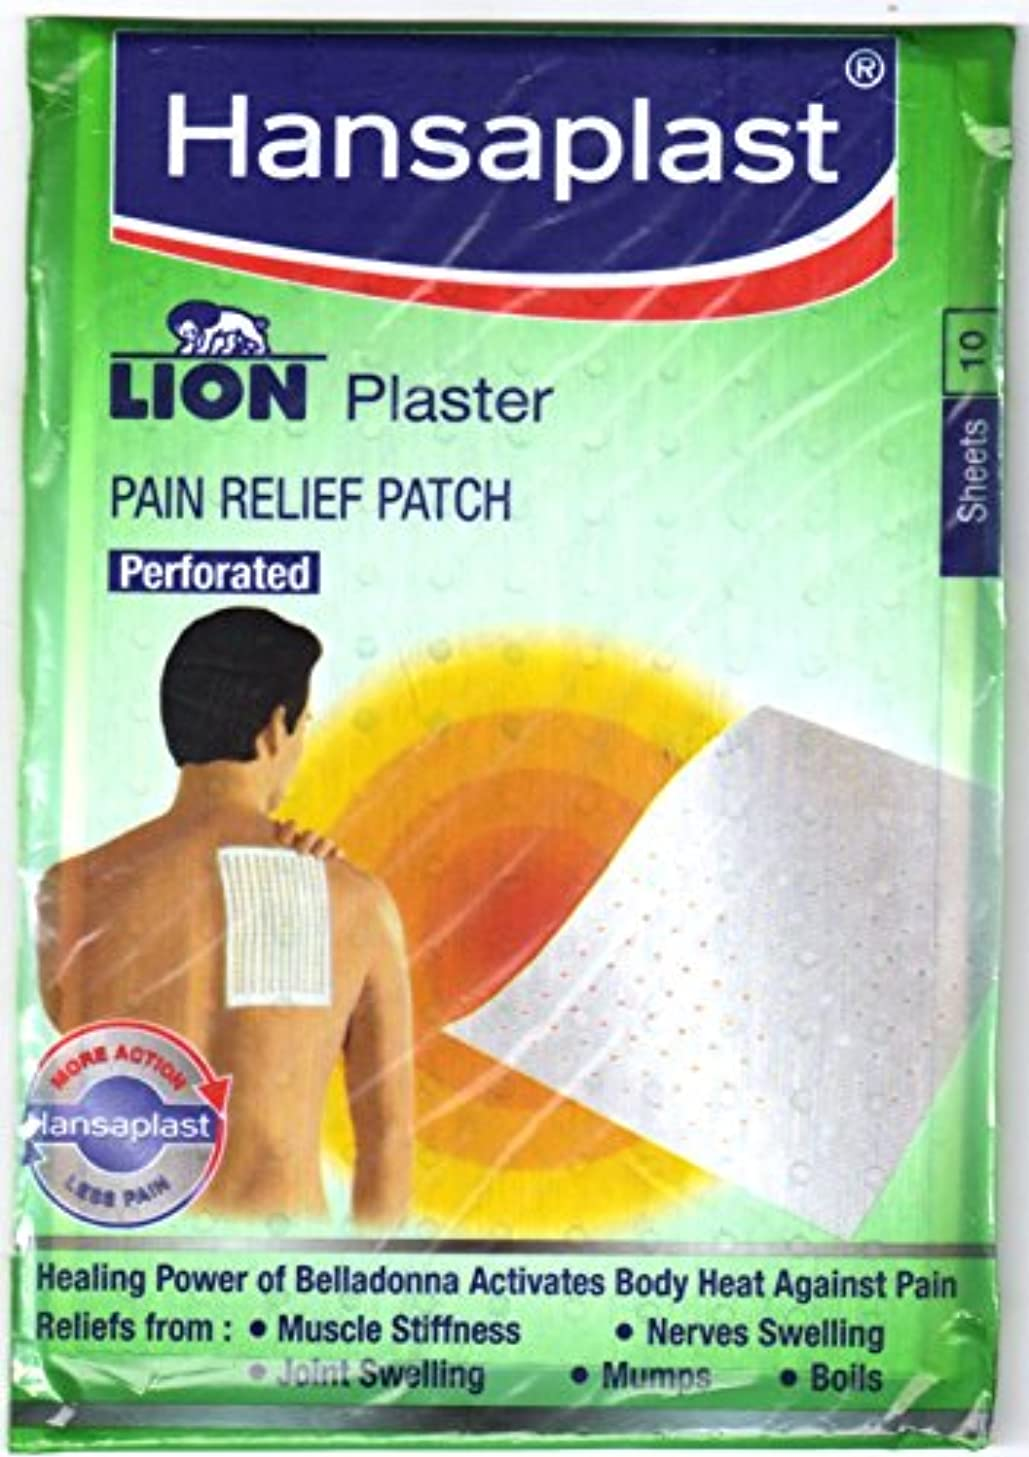 全体パワーセル手荷物Hansaplast Lion plaster (Belladonna) 3 pack of 30 Sheets Pain Relief Patch